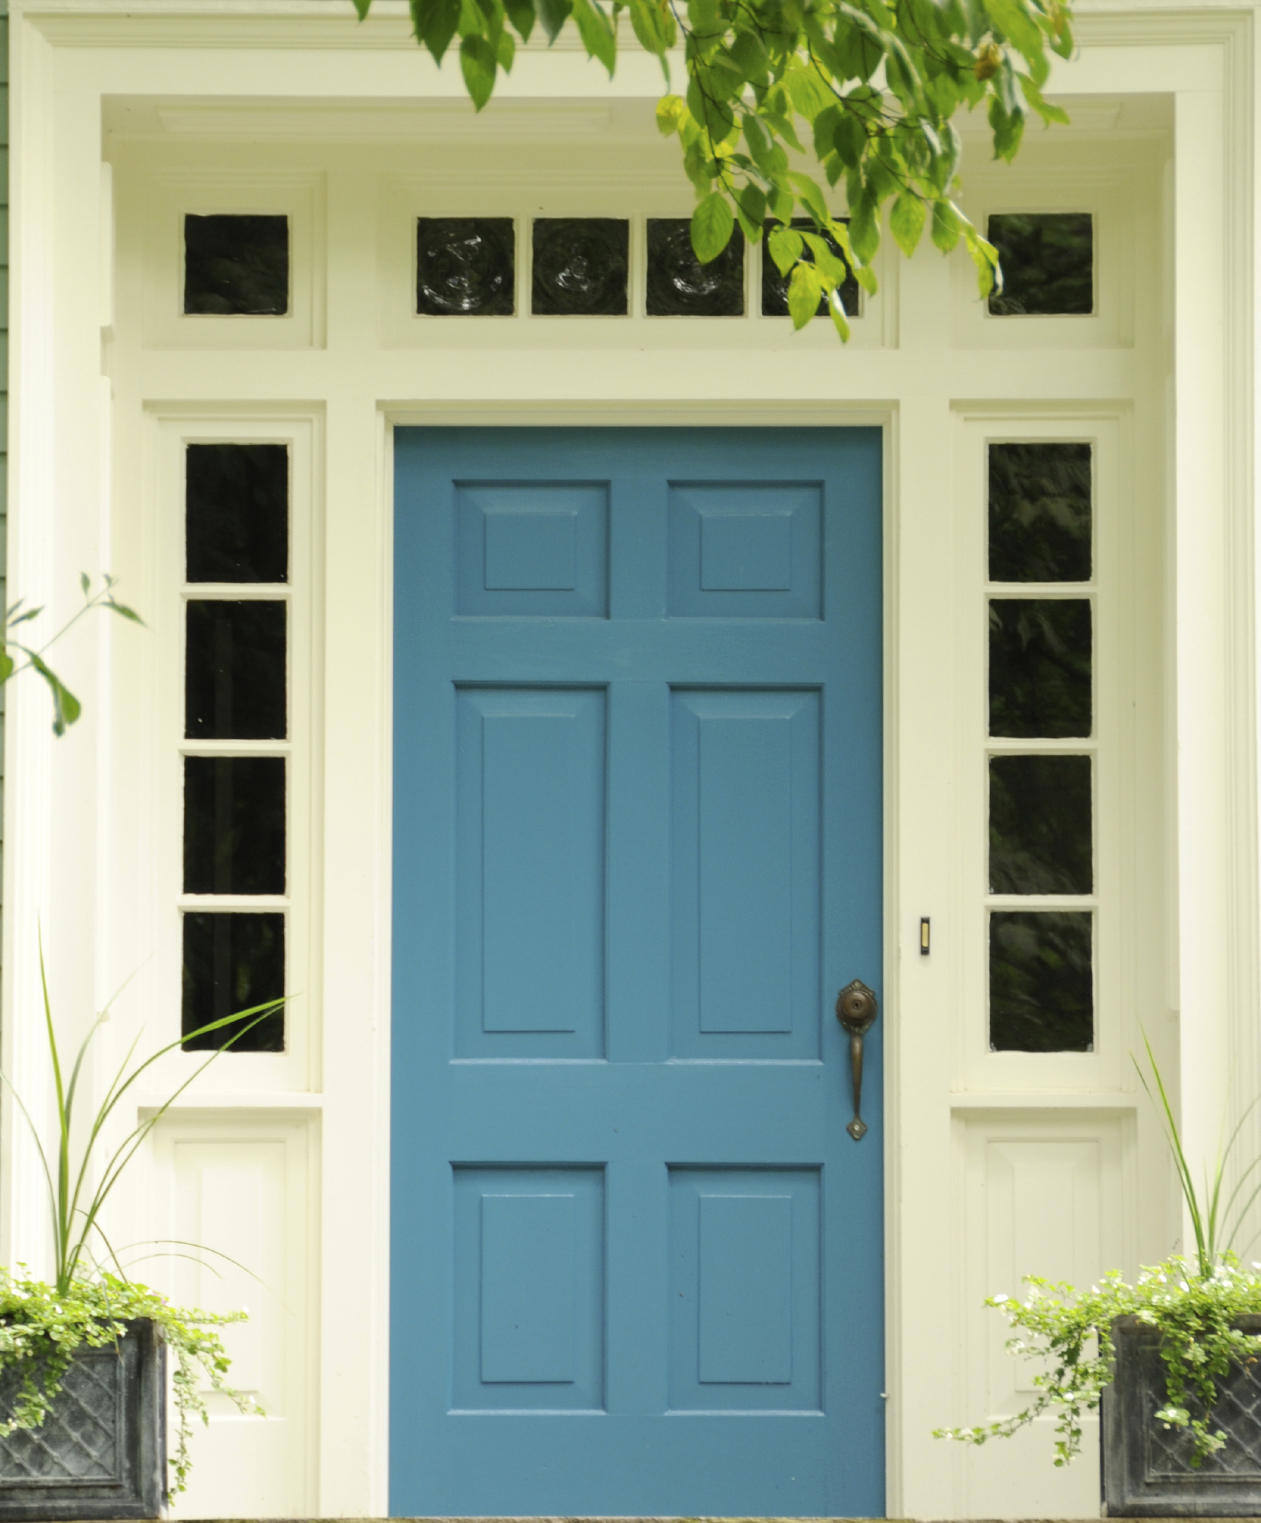 Bon This Blue Front Door Has A Brass Key Entrance Door Knob And A Brass Handle